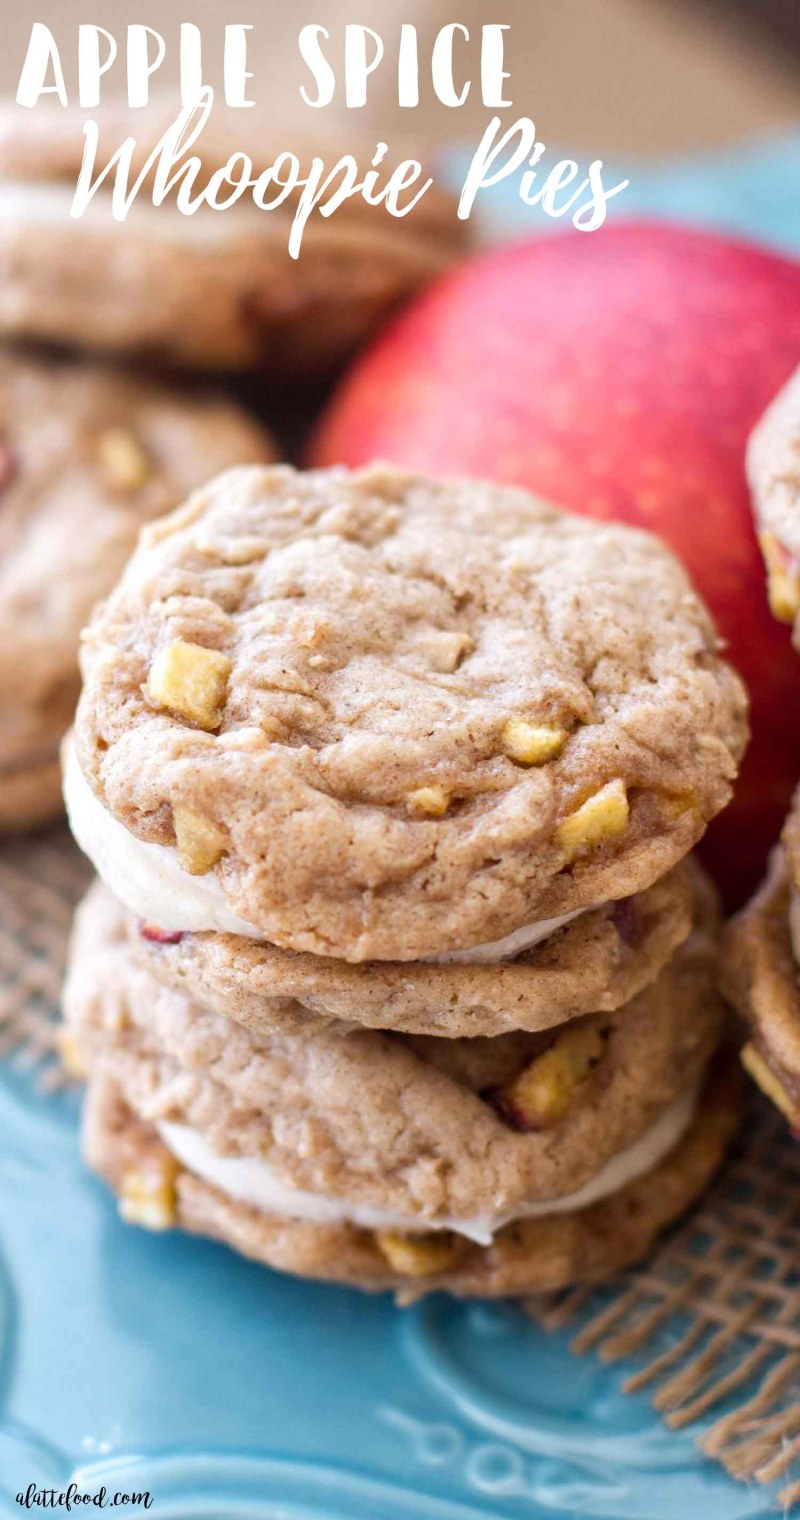 These homemade apple spice whoopie pies are filled with cinnamon spice and baked apples. These sweet apple cookies are filled with a rich, cinnamon cream cheese filling. These apple whoopie pies soft, sweet, and taste like fall! They're my current obsession. One of the best fall desserts, my friends.  how to make whoopie pies, apple cookies, thanksgiving recipes